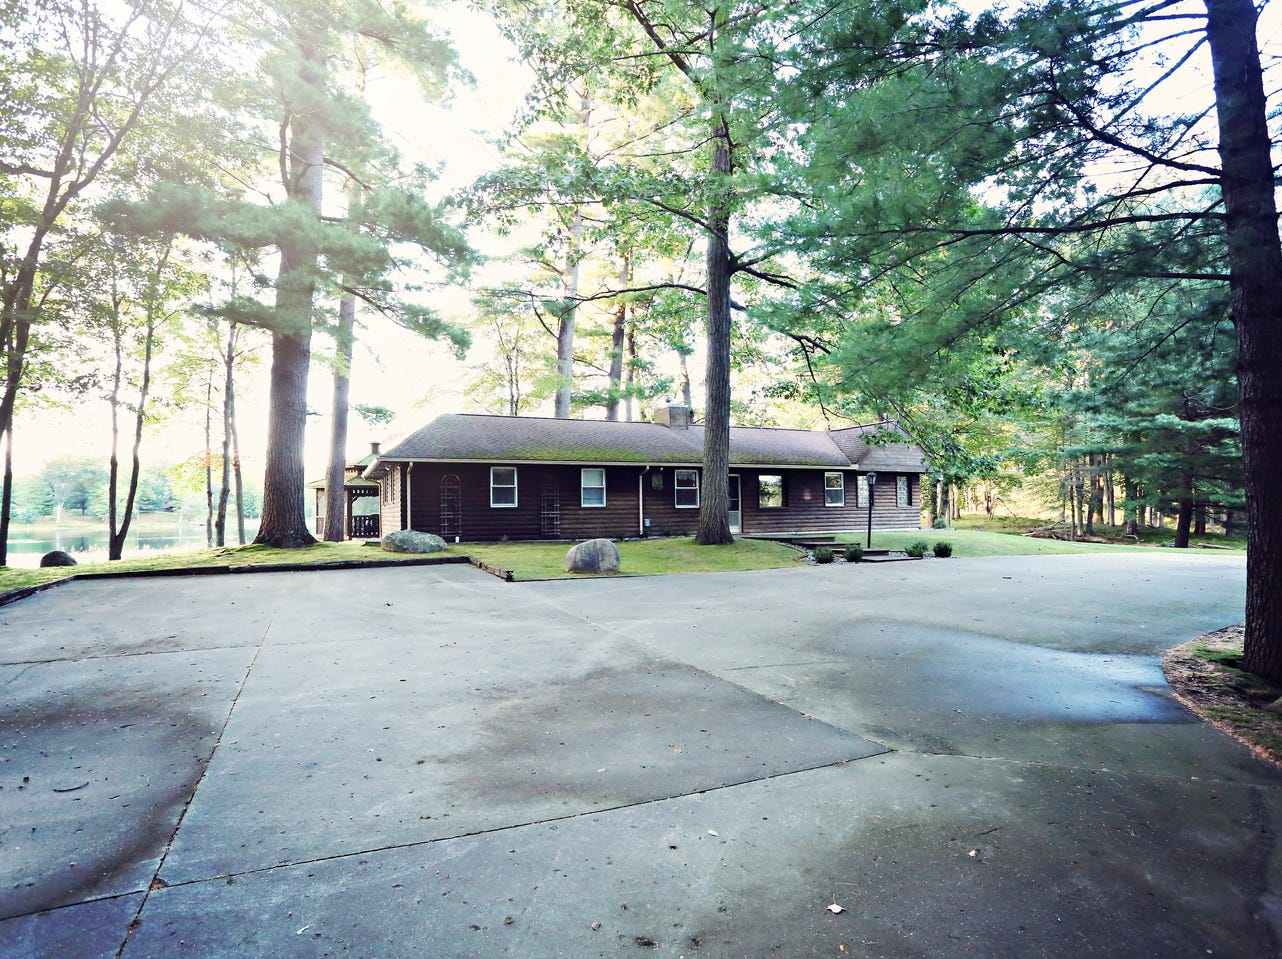 A 1,200 square-foot guest house sits on the southern edge of the south lake. The original home on the property, it has three bedrooms and three bathrooms.